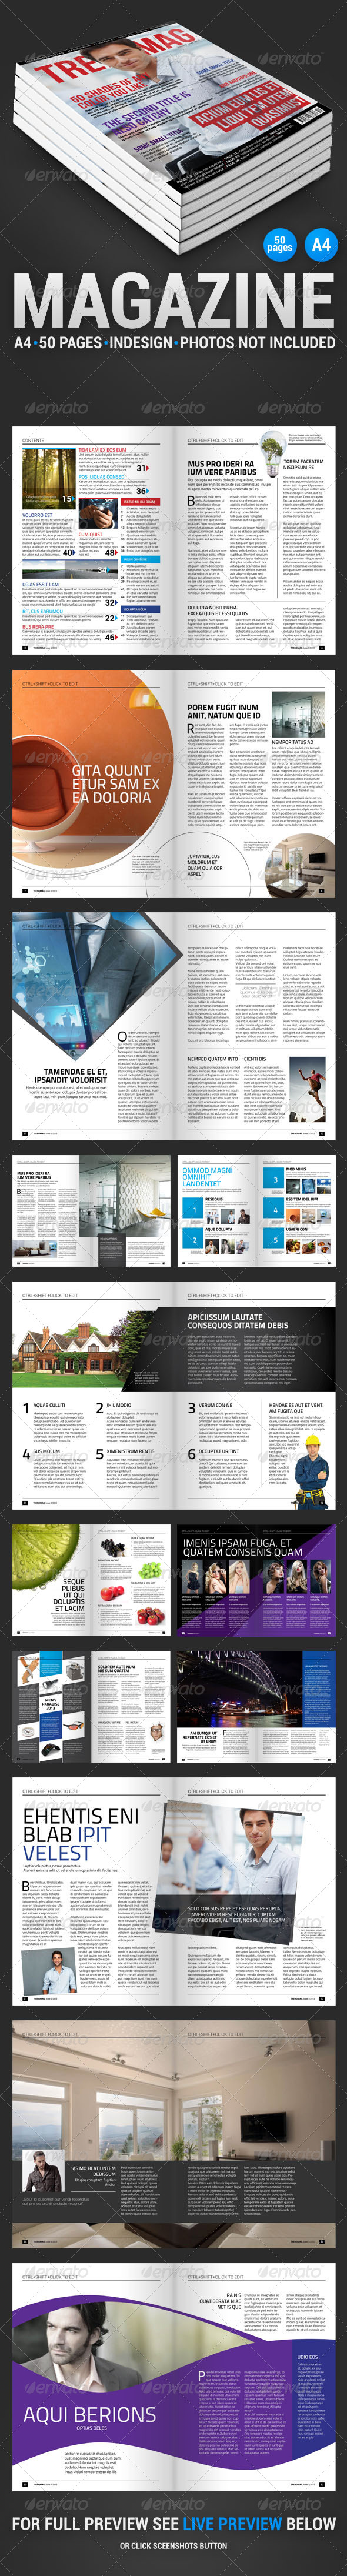 GraphicRiver TrendMag 50 pages magazine 4269864